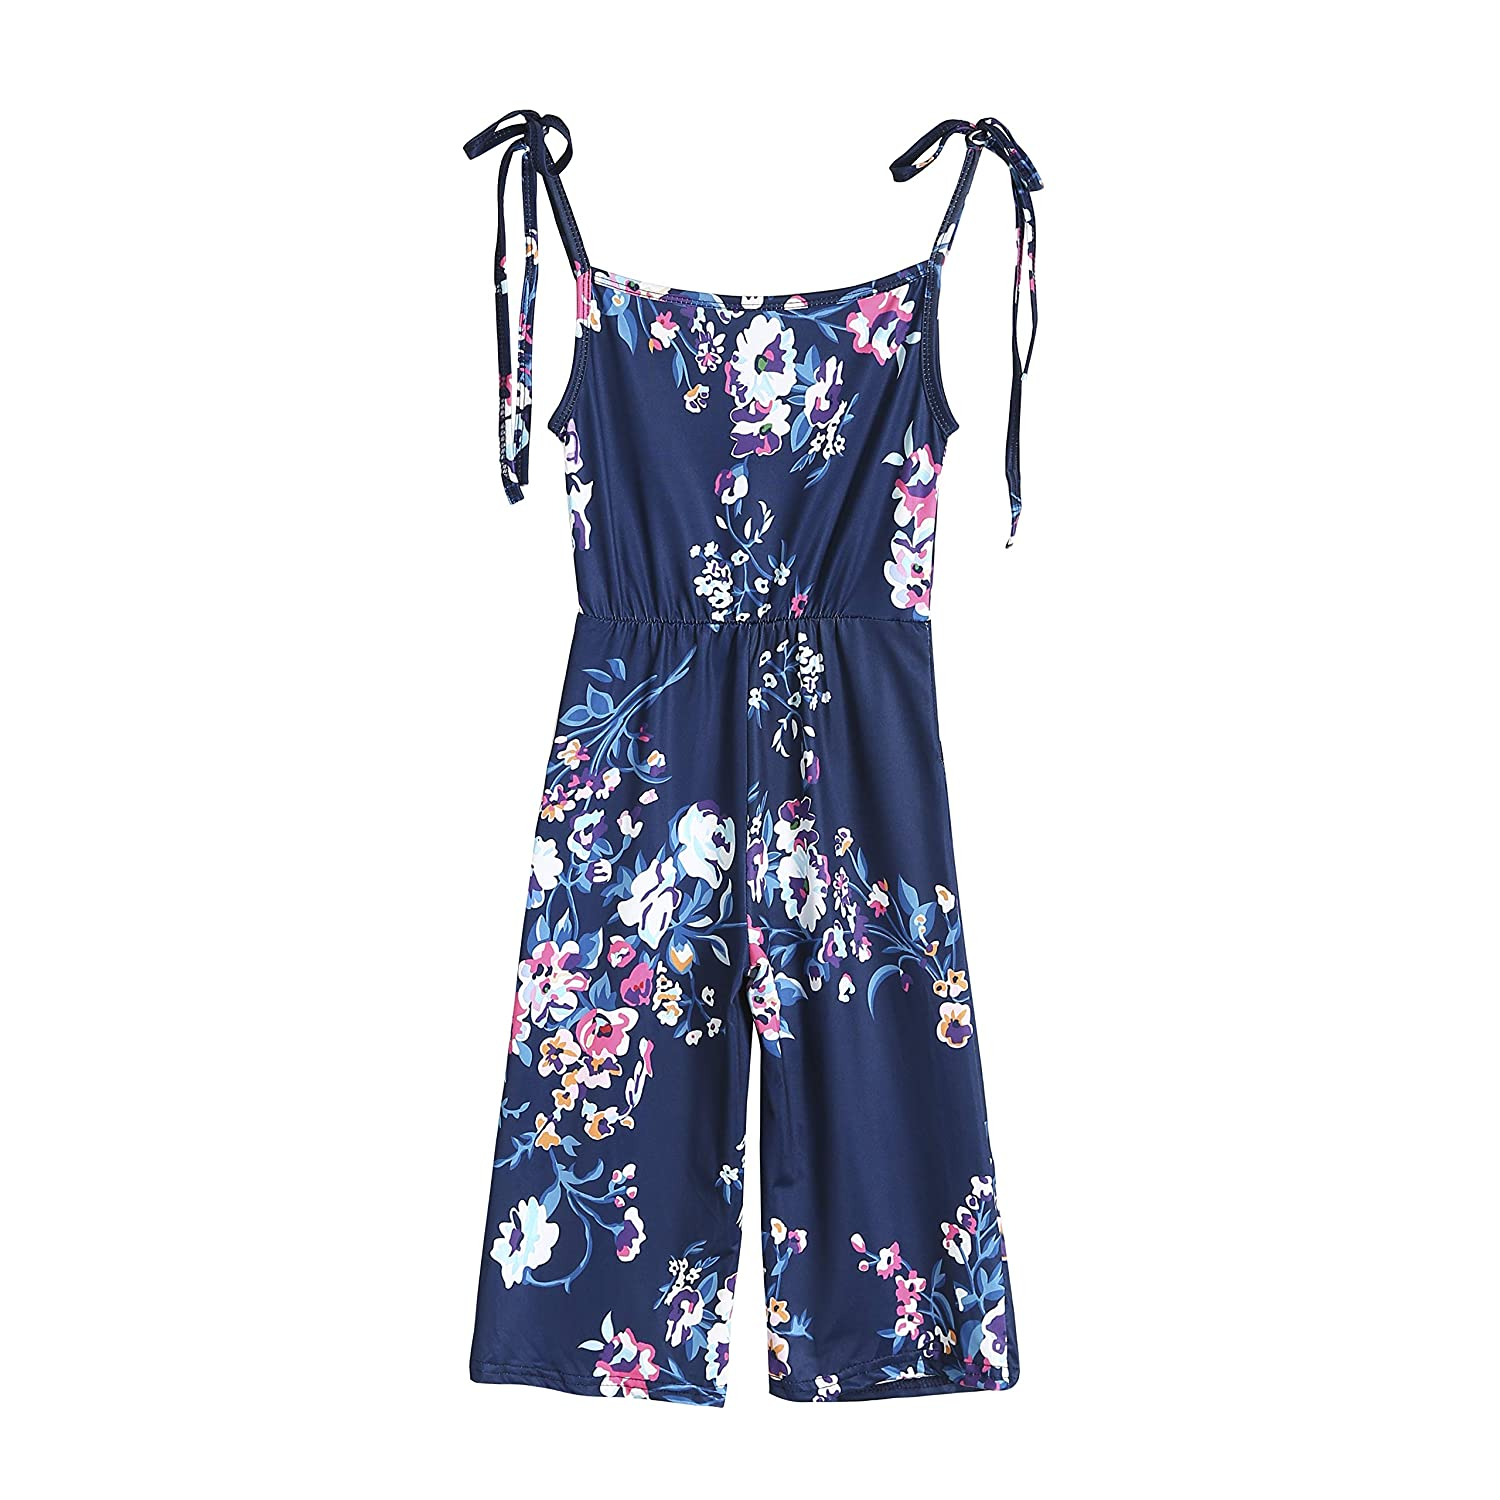 Loalirando Summer Boho Sleeveless Mommy and Me Floral Print Jumpsuit Family Matching Casual Outfits Off Shoulder Romper with Wide Legs